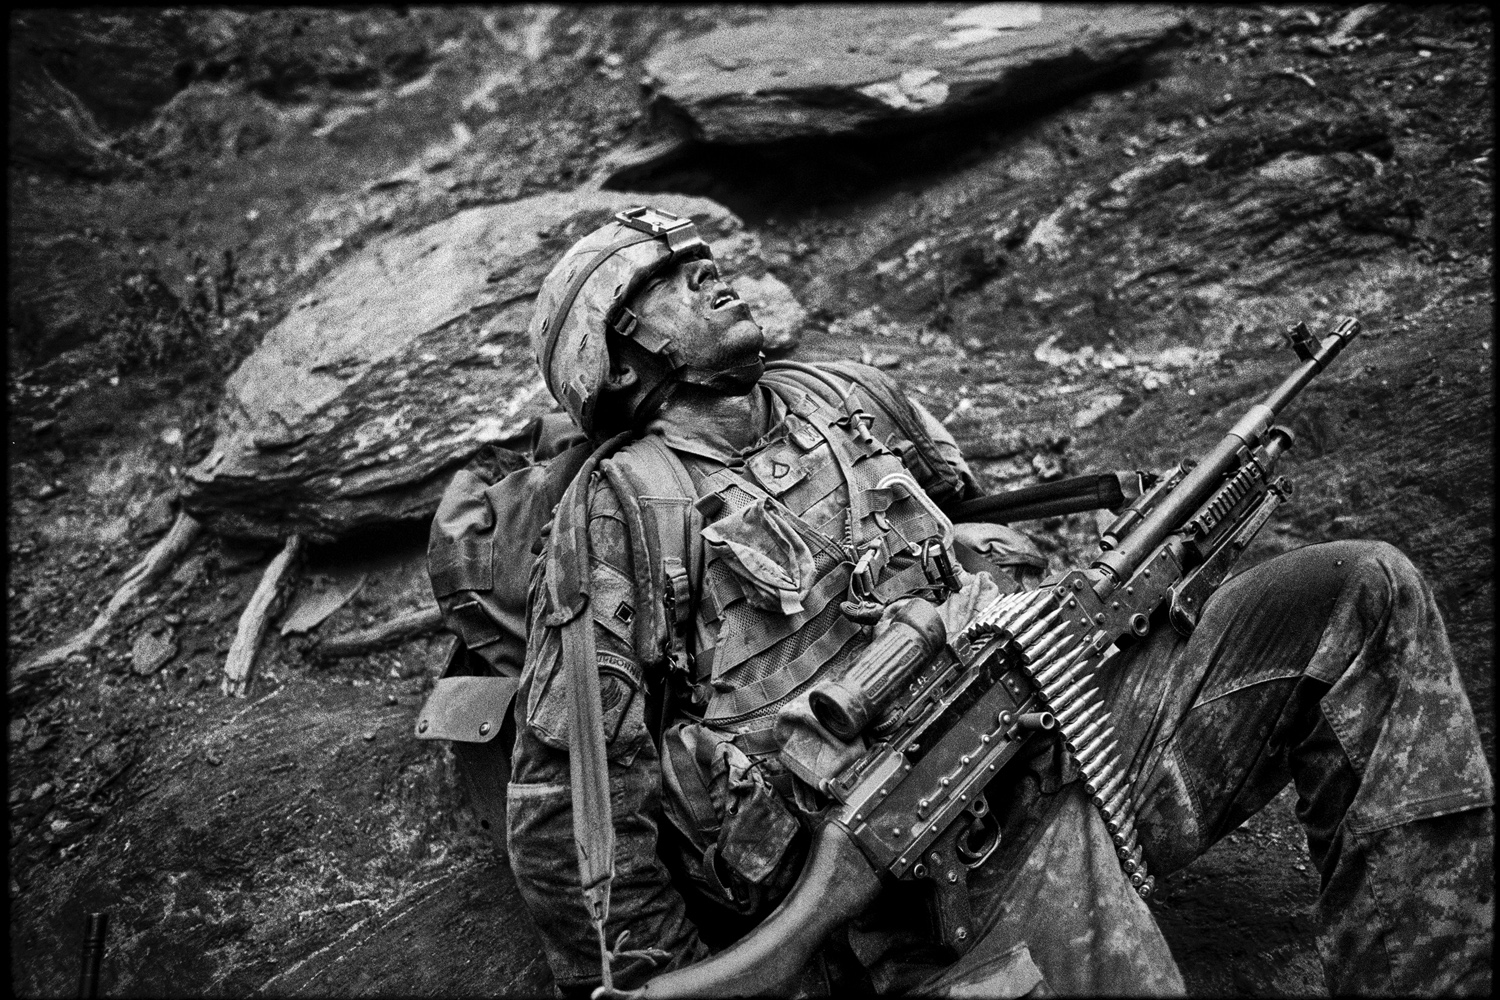 U.S. Army Specialist Sterling Jones collapses in exhaustion during Operation Rock Avalanche in the Korengal Valley, Afghanistan. 2007.                                                                                             (WPP 1st prize, General News Stories, 2007)